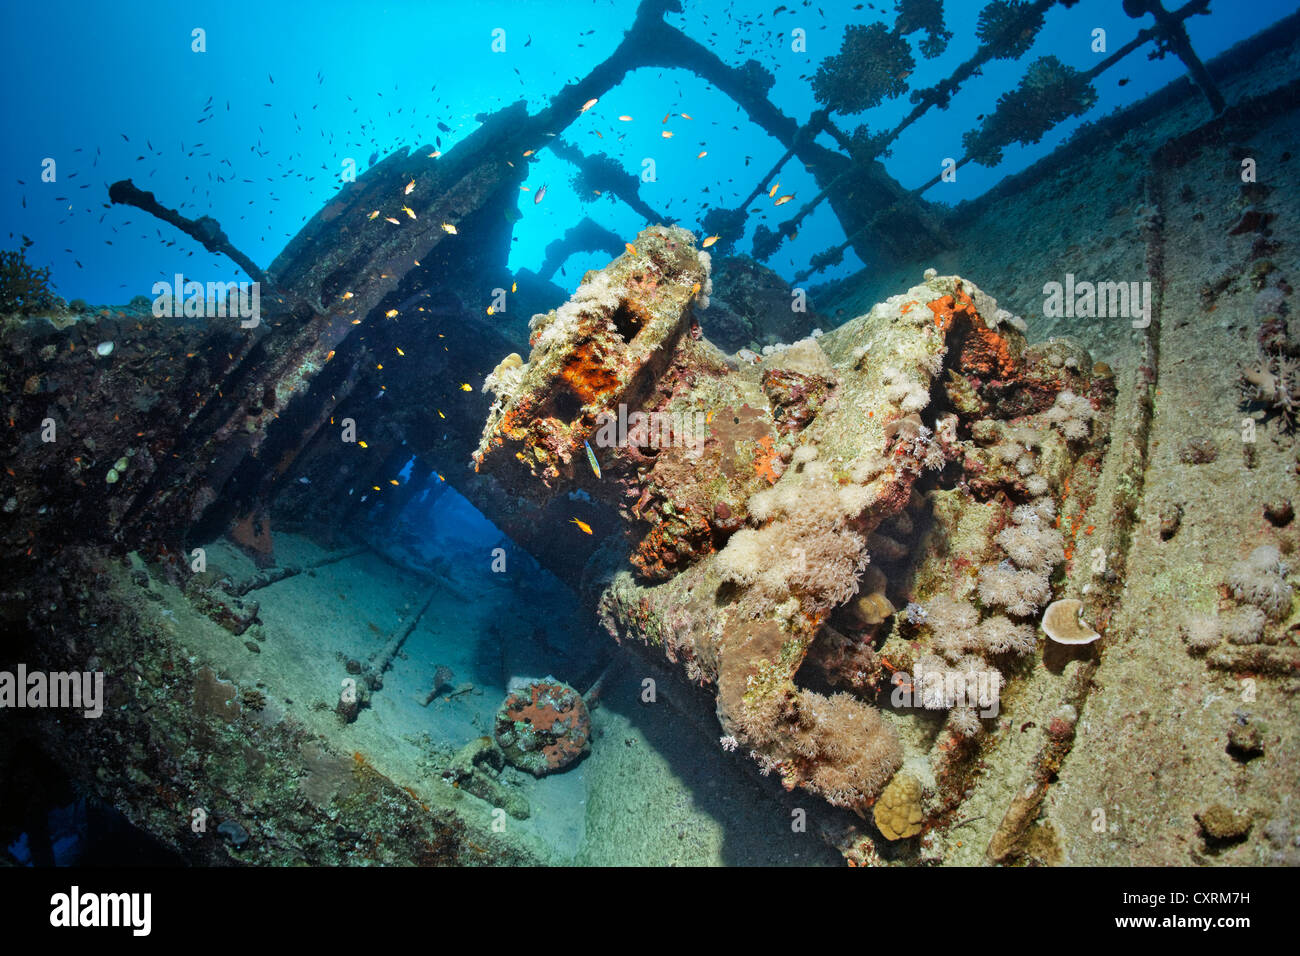 Side passage, winch, rail, shipwreck, tanker, S.S. Turbo, build 1912, sank on 4/4/1942 during World War II - Stock Image